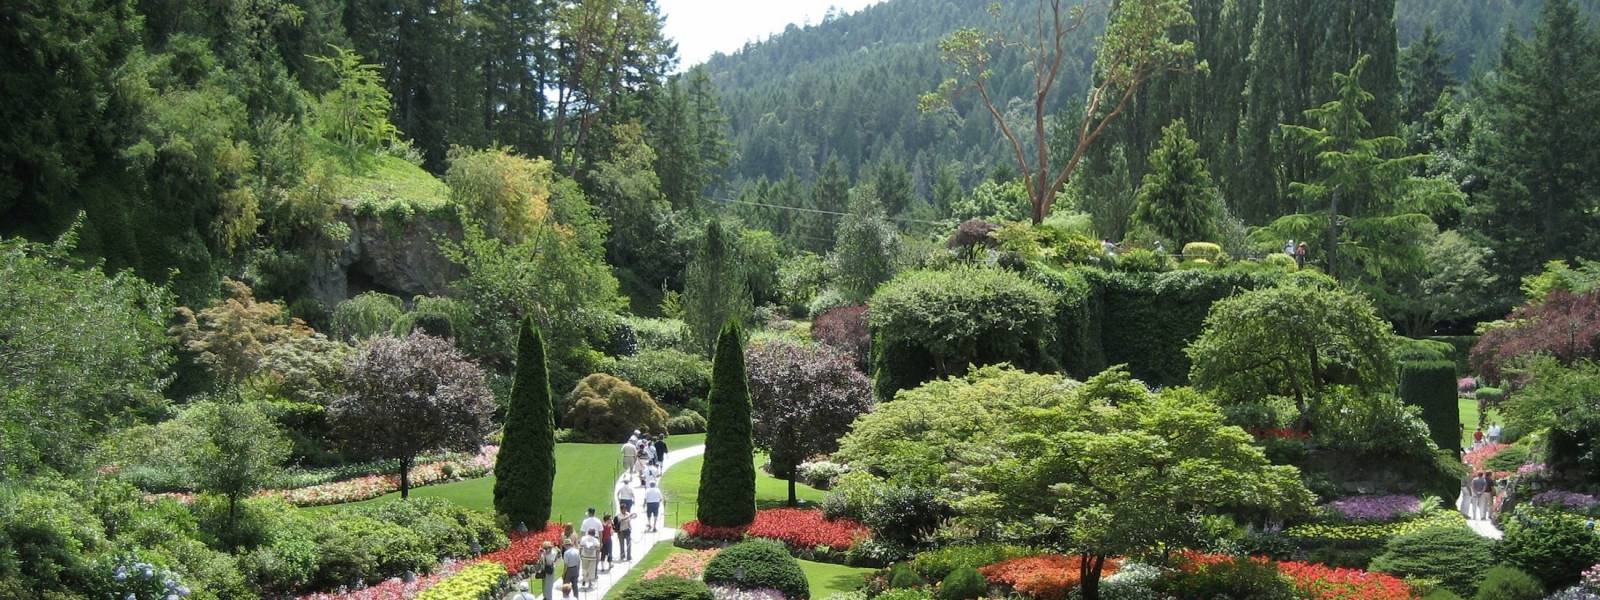 a green plant in a garden with Butchart Gardens in the background